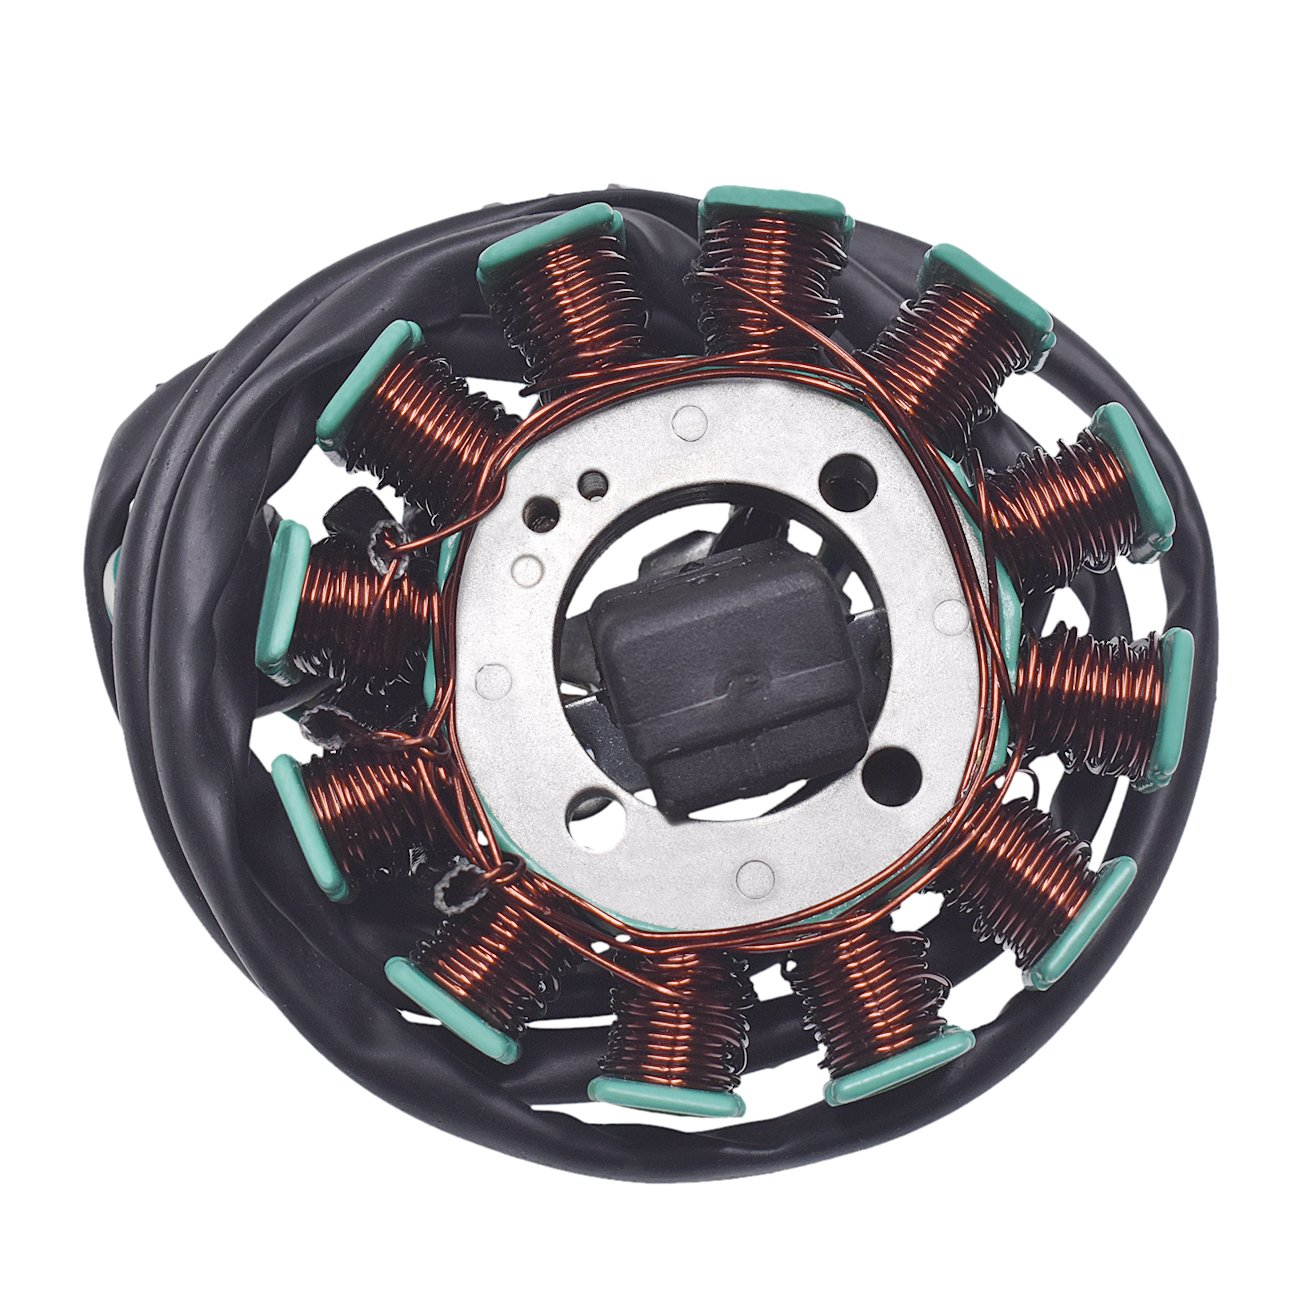 JRL 12V Copper 4 Poles Magneto Stator Coil For Motorcycle Lighting CG125